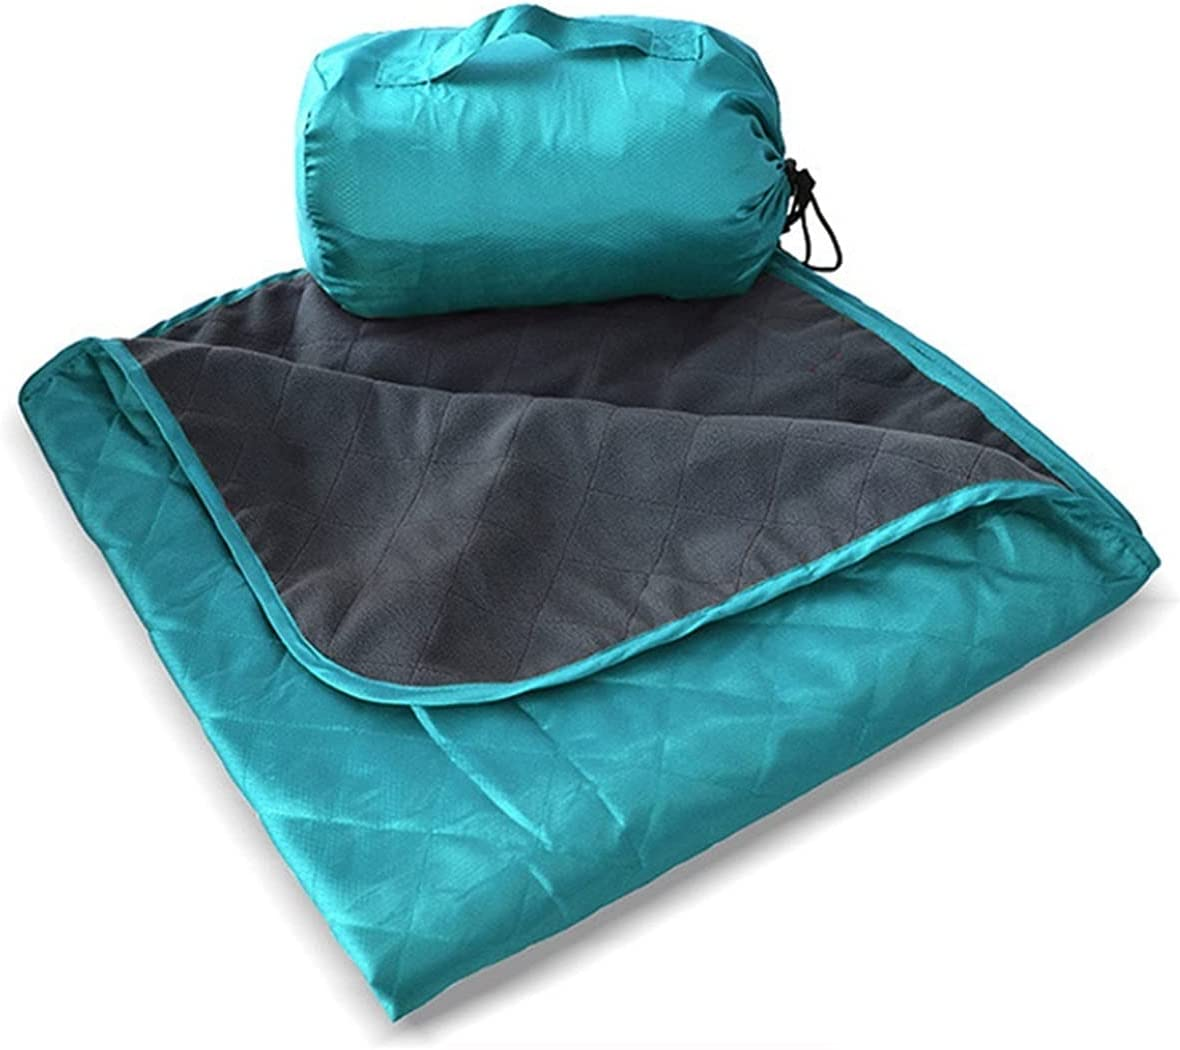 LWCYBH Blanket NEW before Popular brand in the world selling ☆ Fleece Camping Outdoor Pic Windproof Body